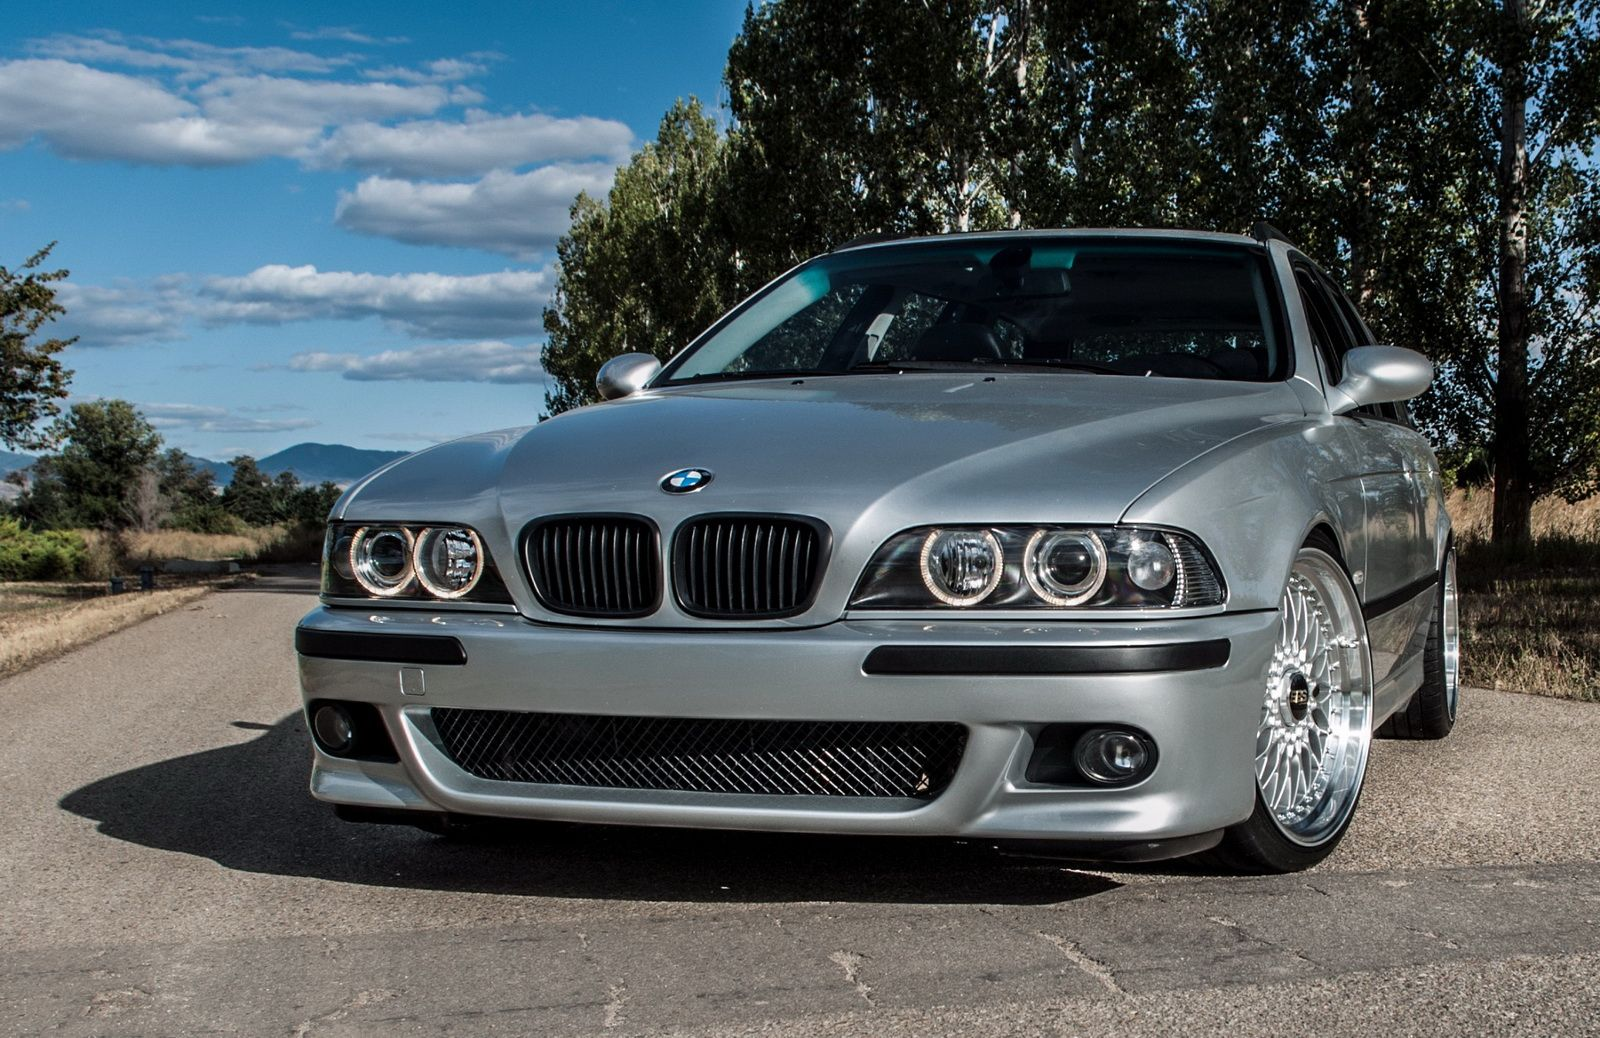 The Perfect Wagon Gto Powered E39 Bmw 540i Touring With A Manual